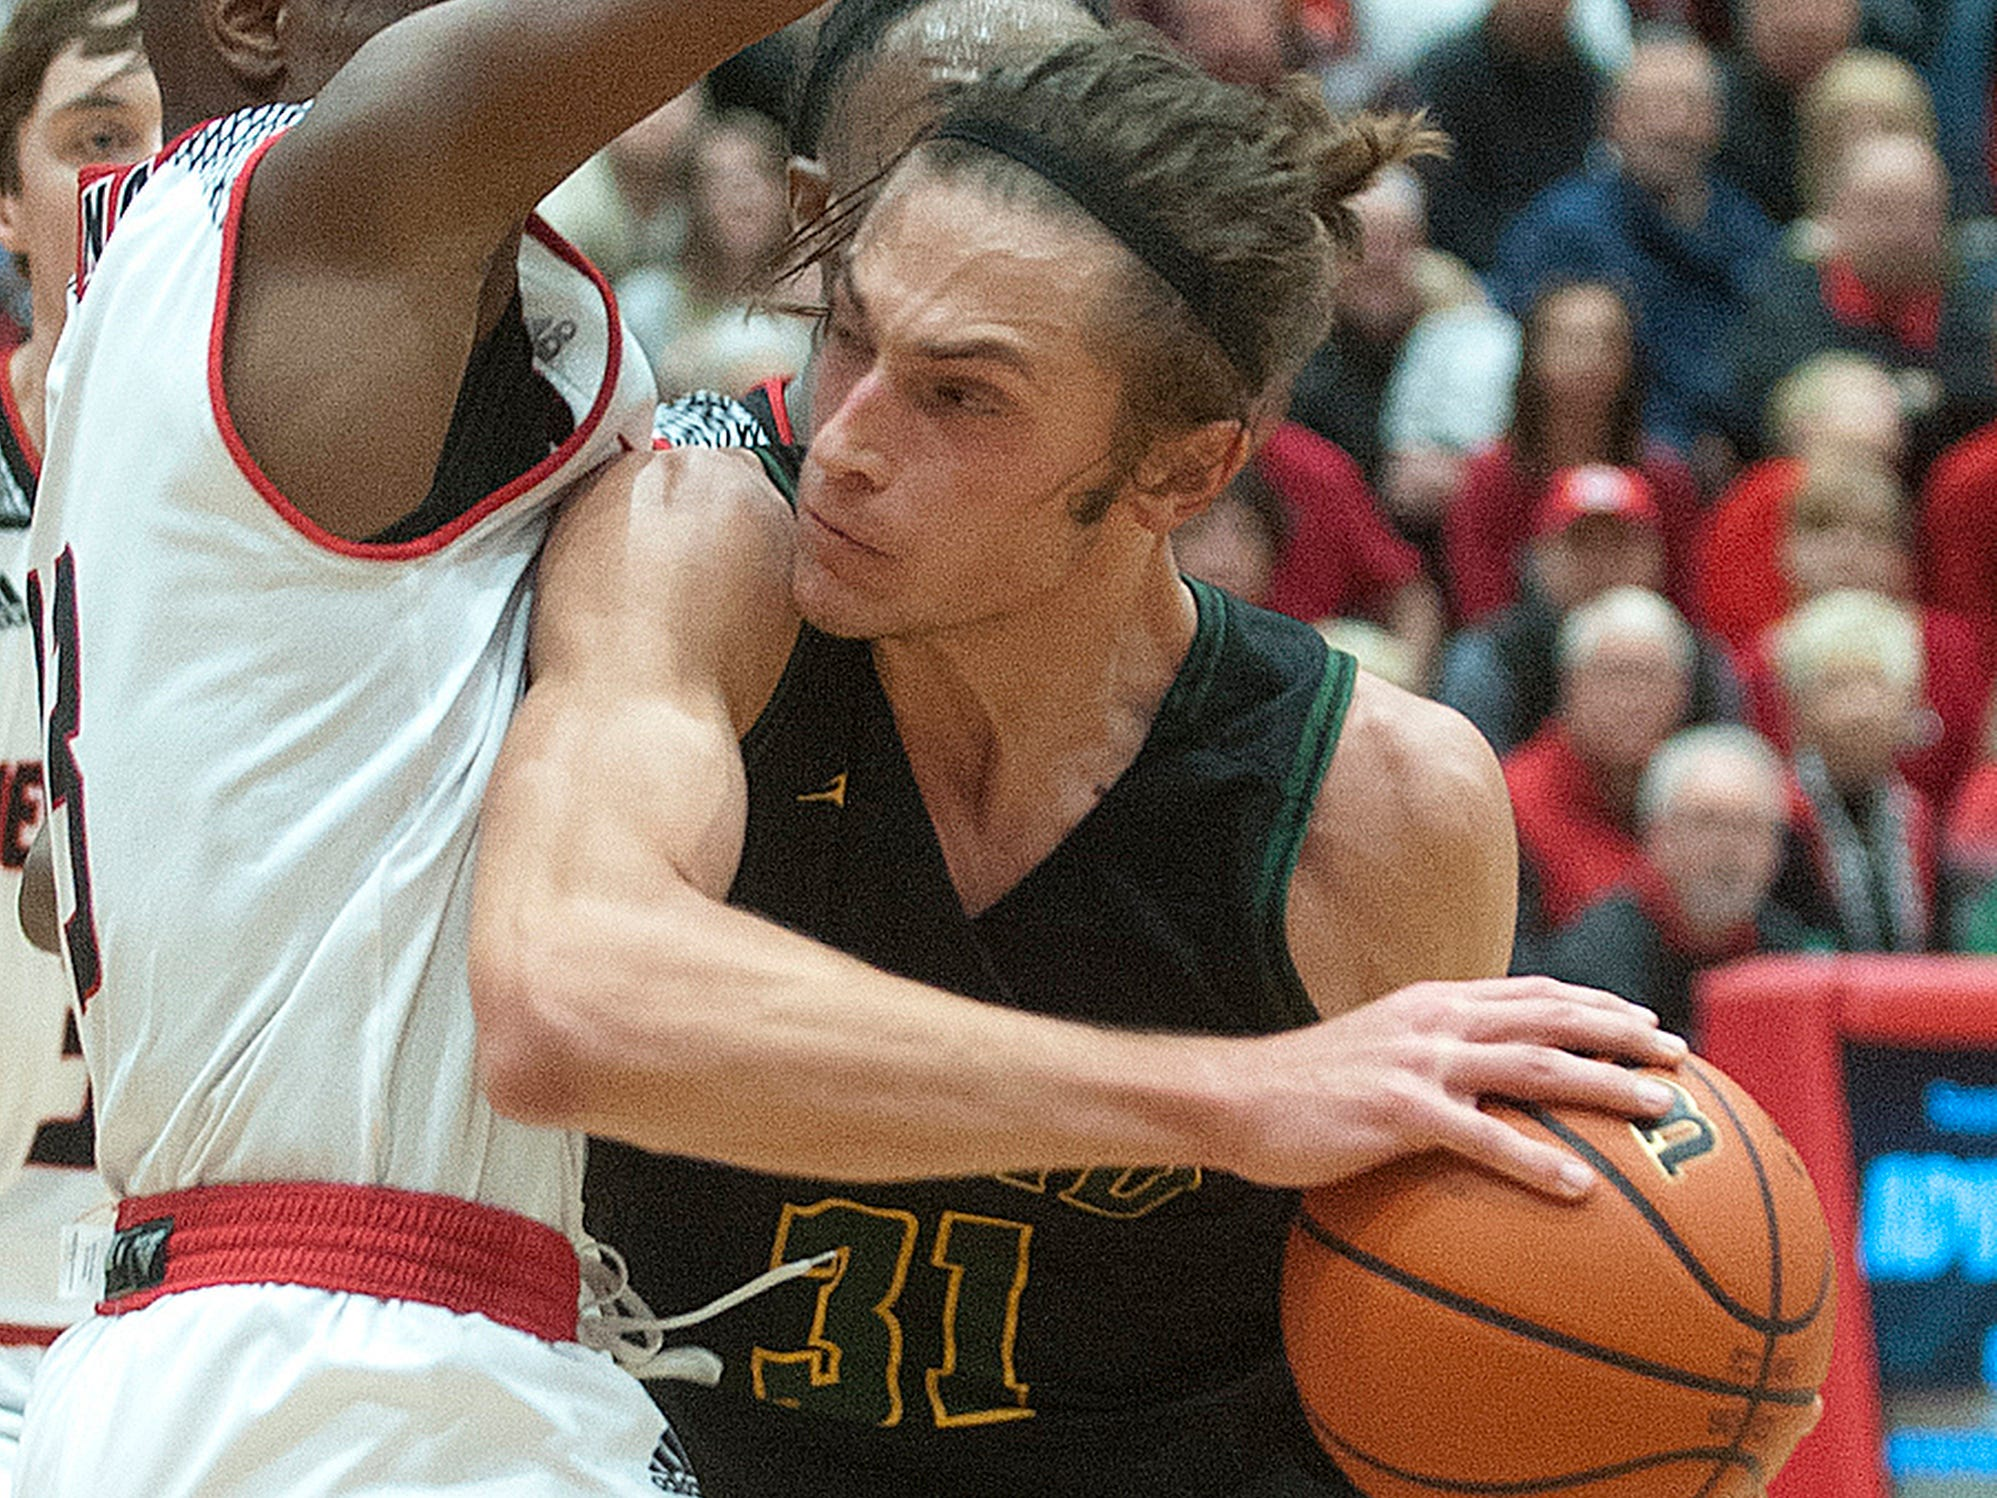 Floyd Central forward Cam Sturgeon makes contact with New Albany guard Chris Johnson on the way to the basket.07 December 2018